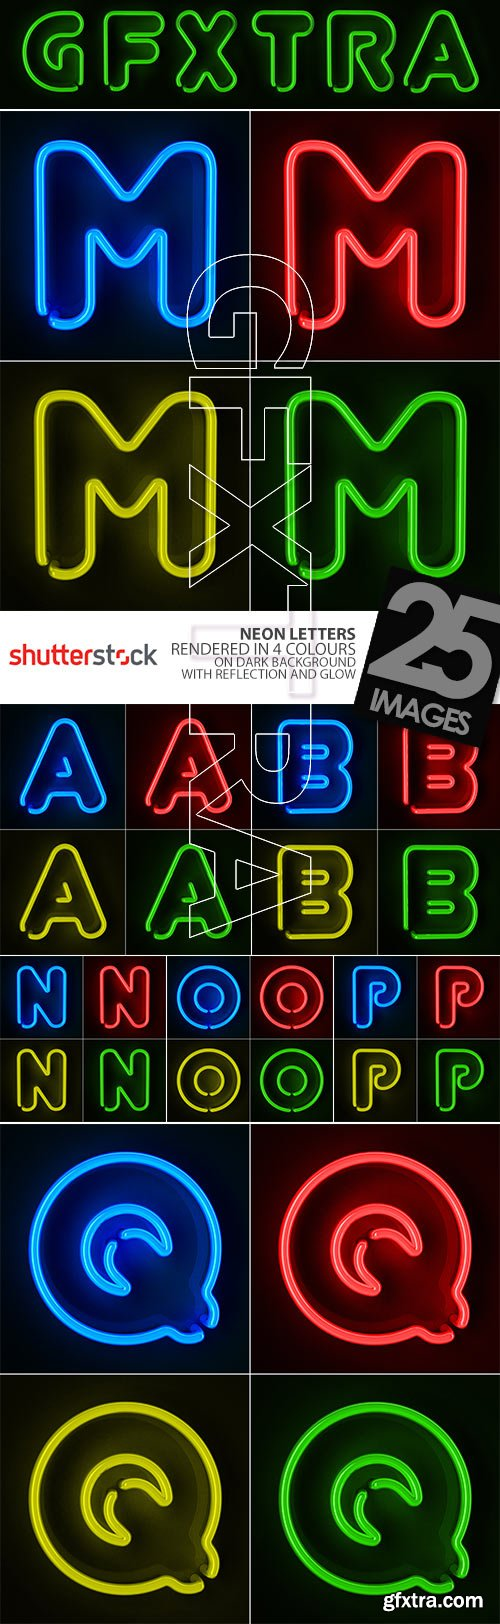 Neon Letters Rendered in 4 Colours on Dark Background 26xJPGs